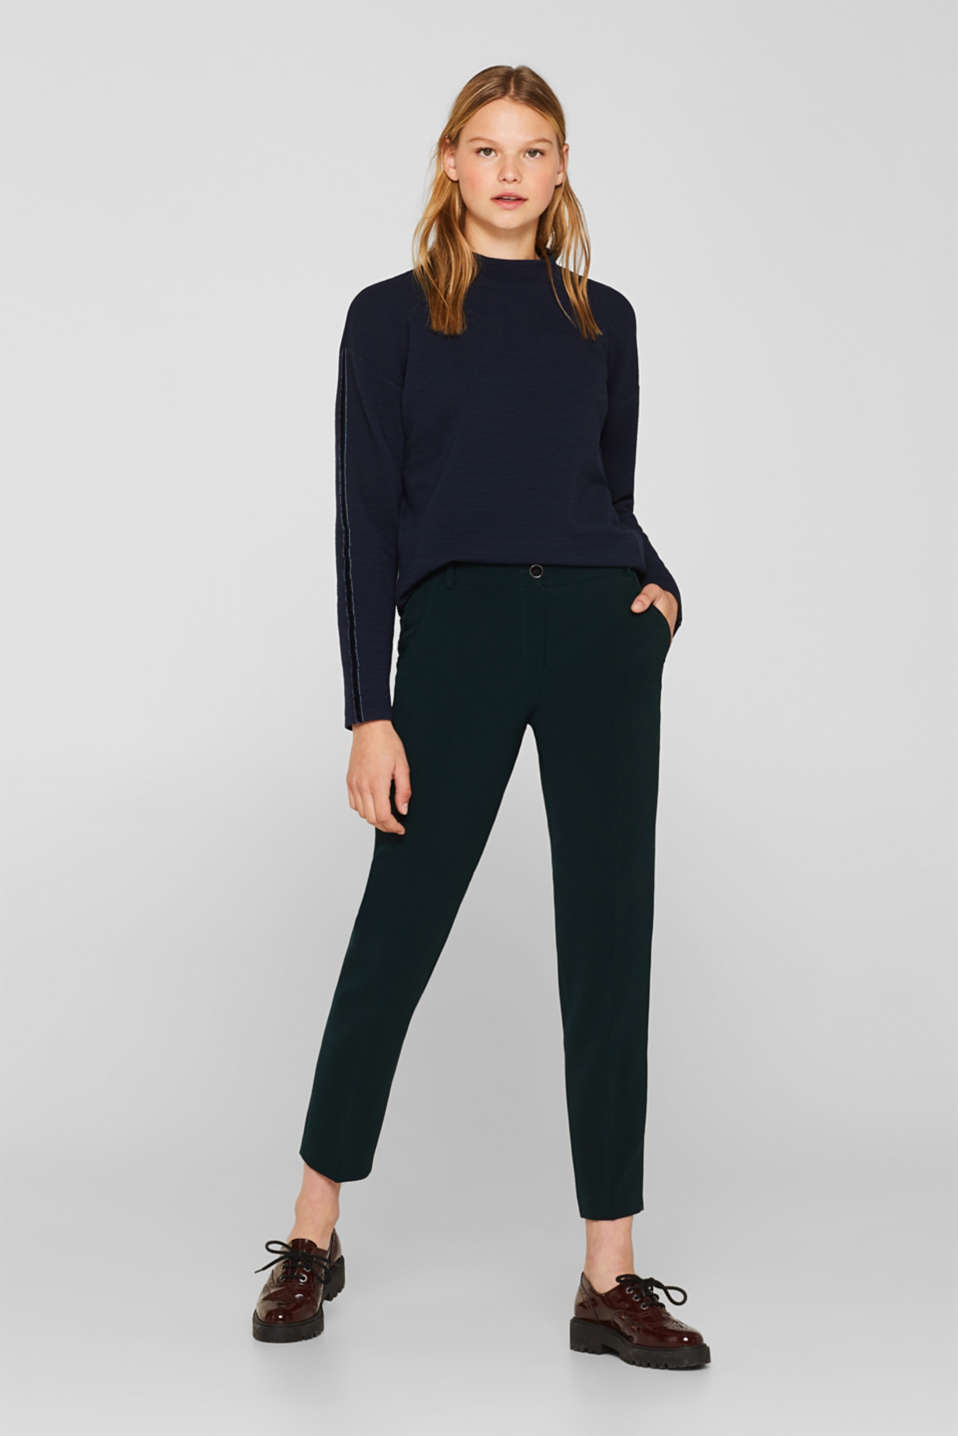 Stretch long sleeve top with velvet details, NAVY, detail image number 7